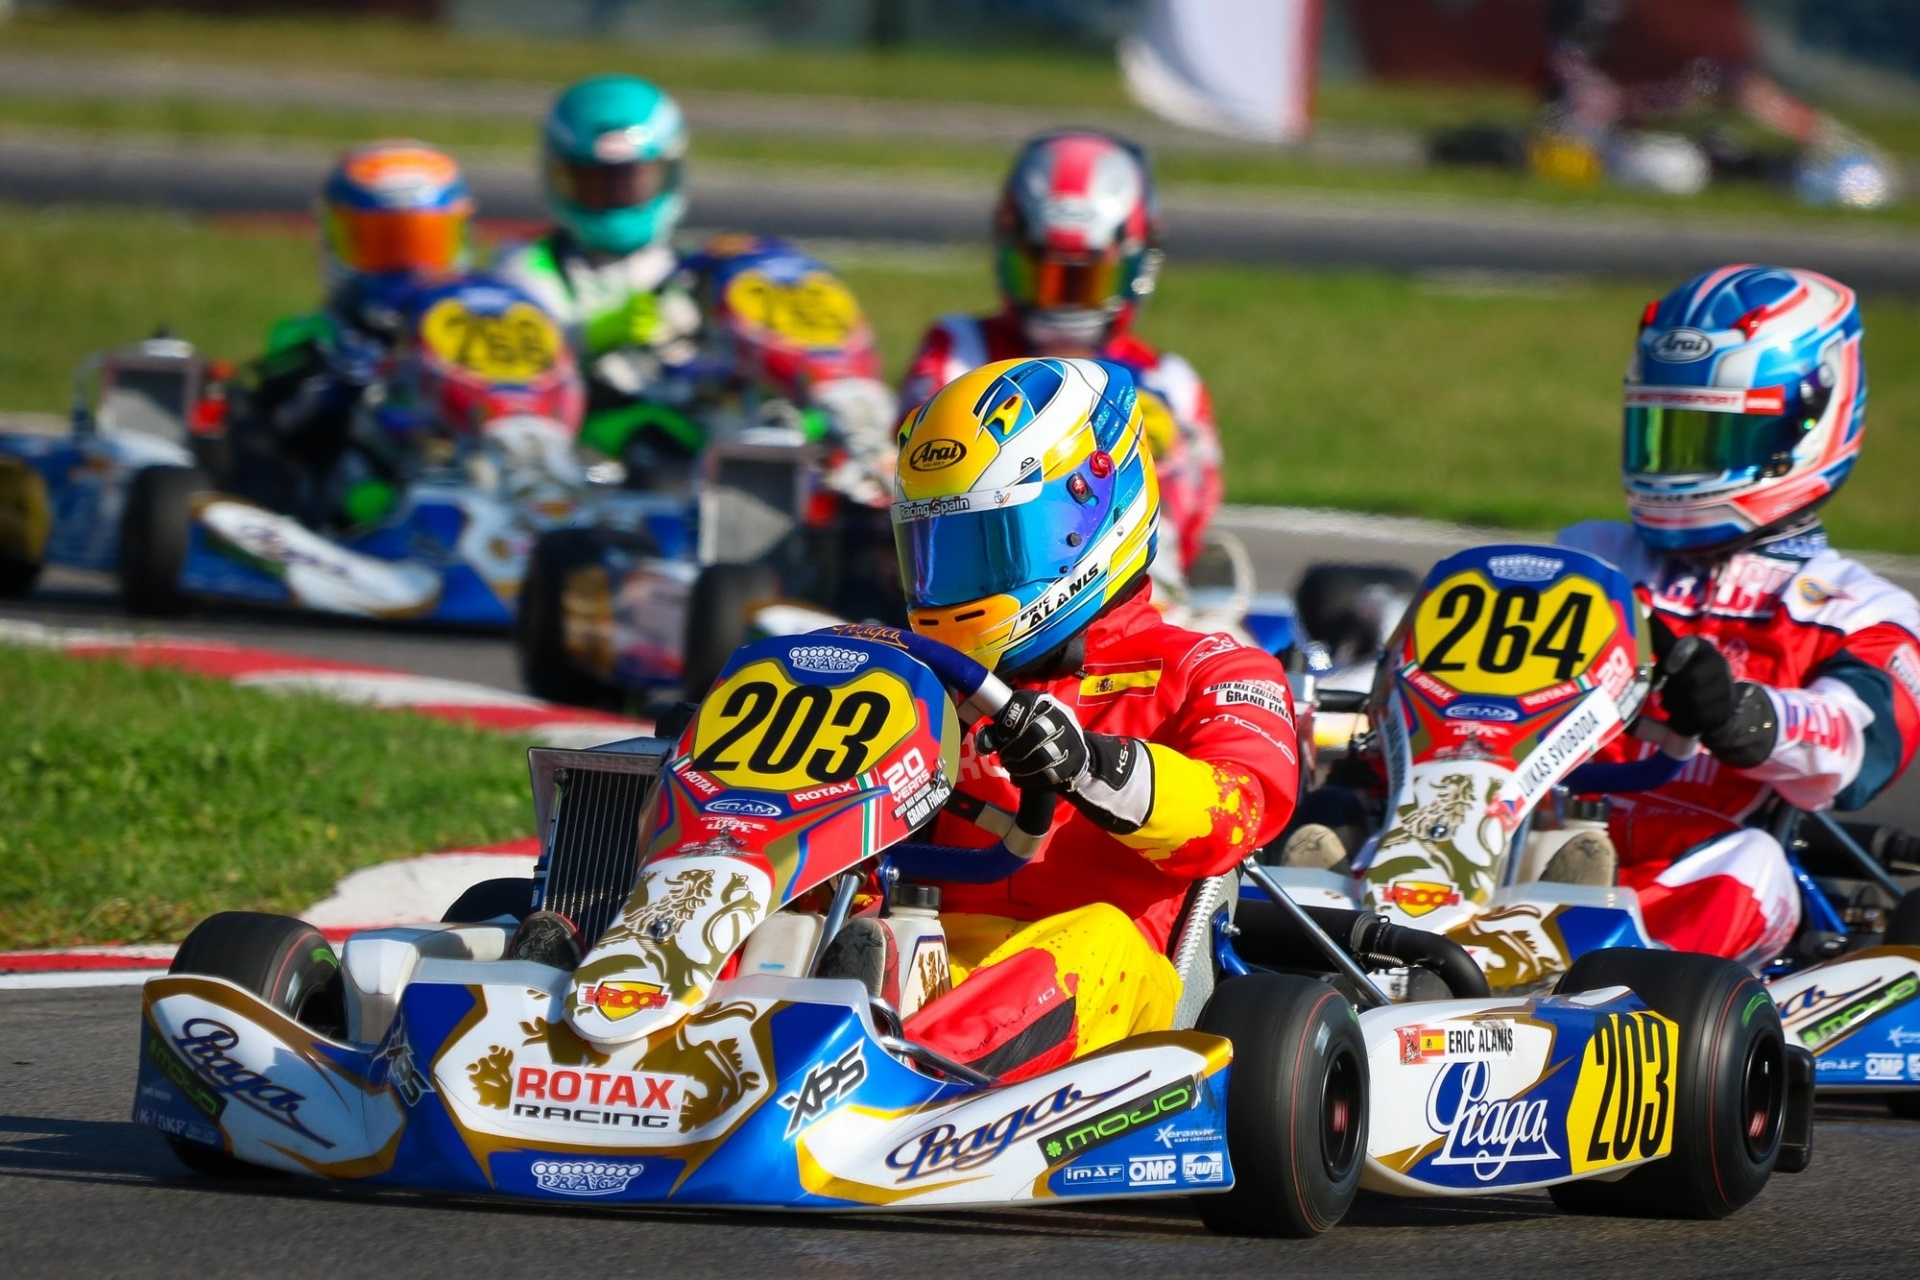 Rotax Grand Finals Junior - Eric Alanis finalista